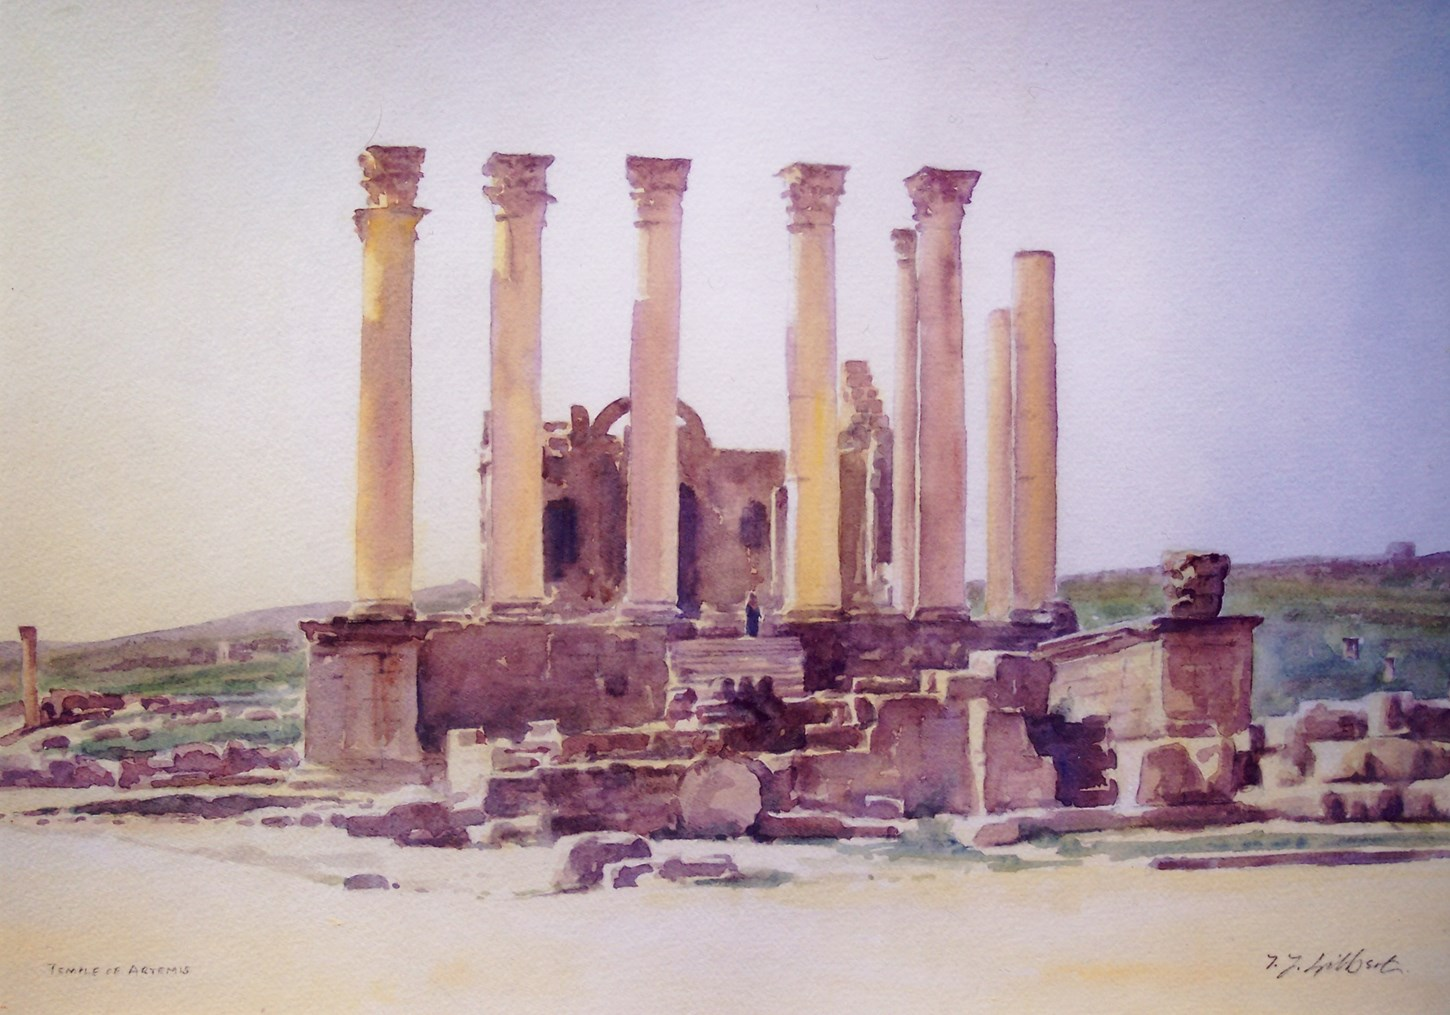 The Temple of Artemis, Jerash, Jordan